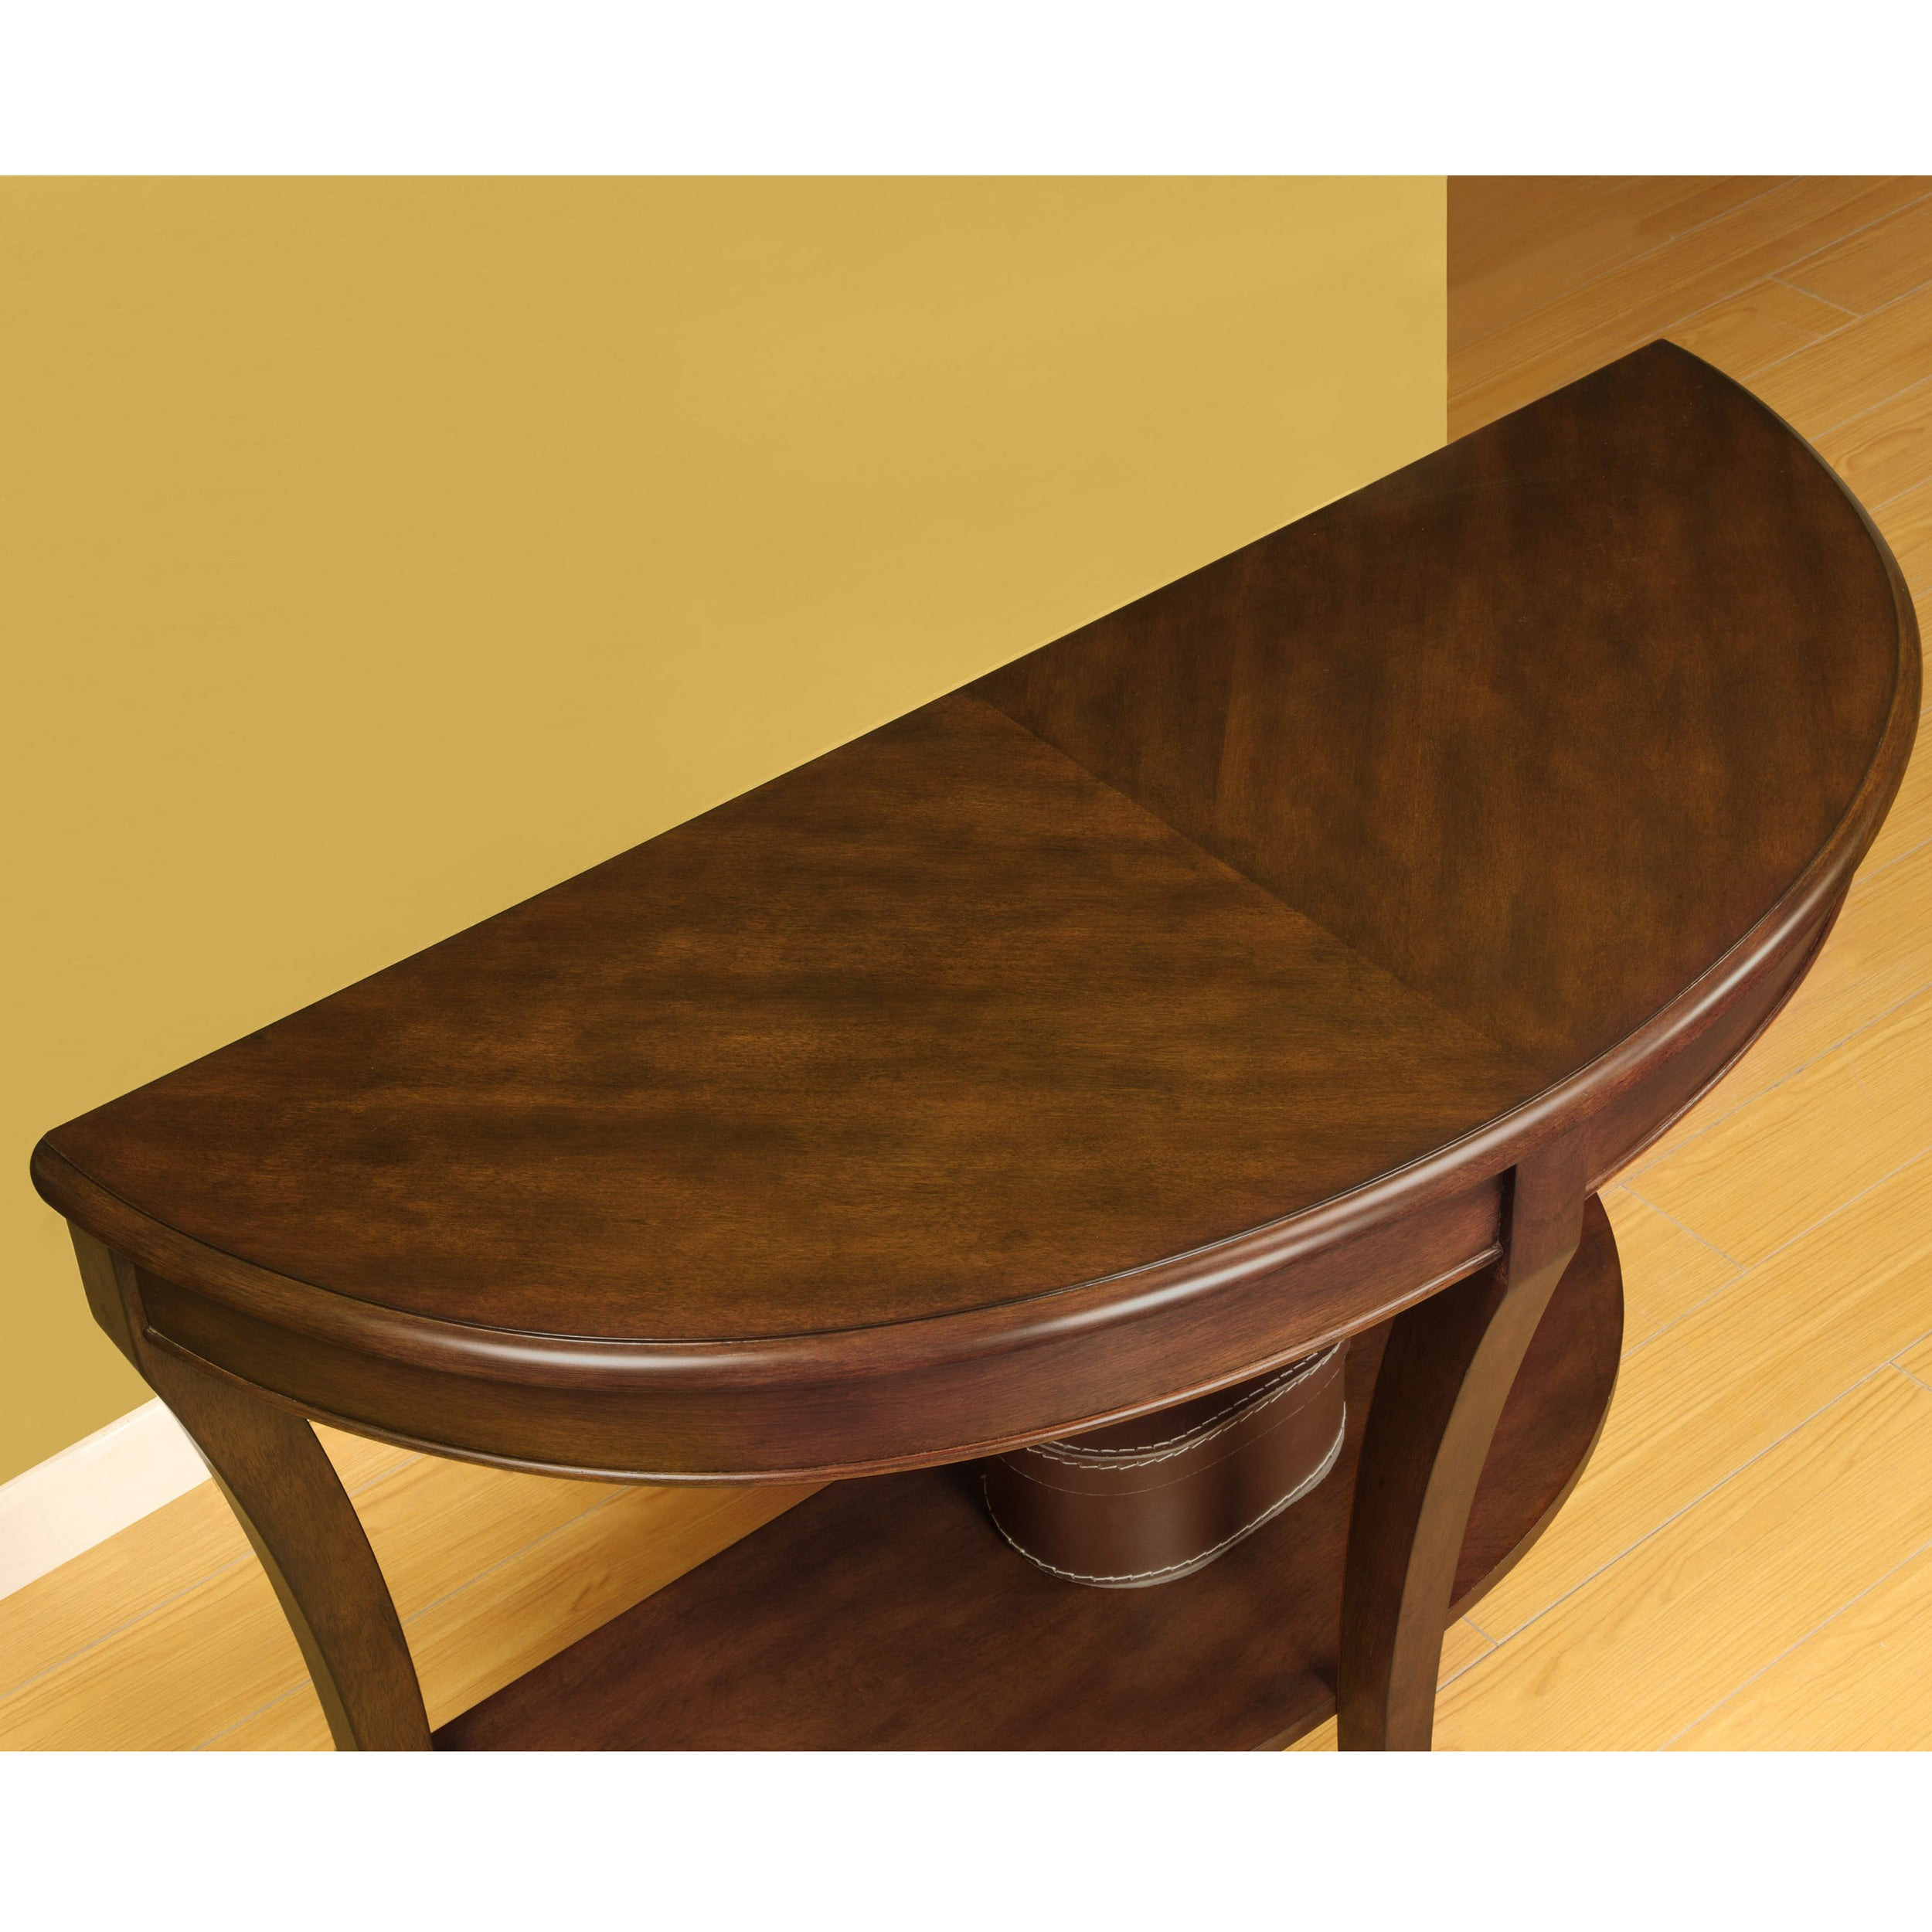 Copper Grove Half Round Sofa Table Free Shipping Today 11143150